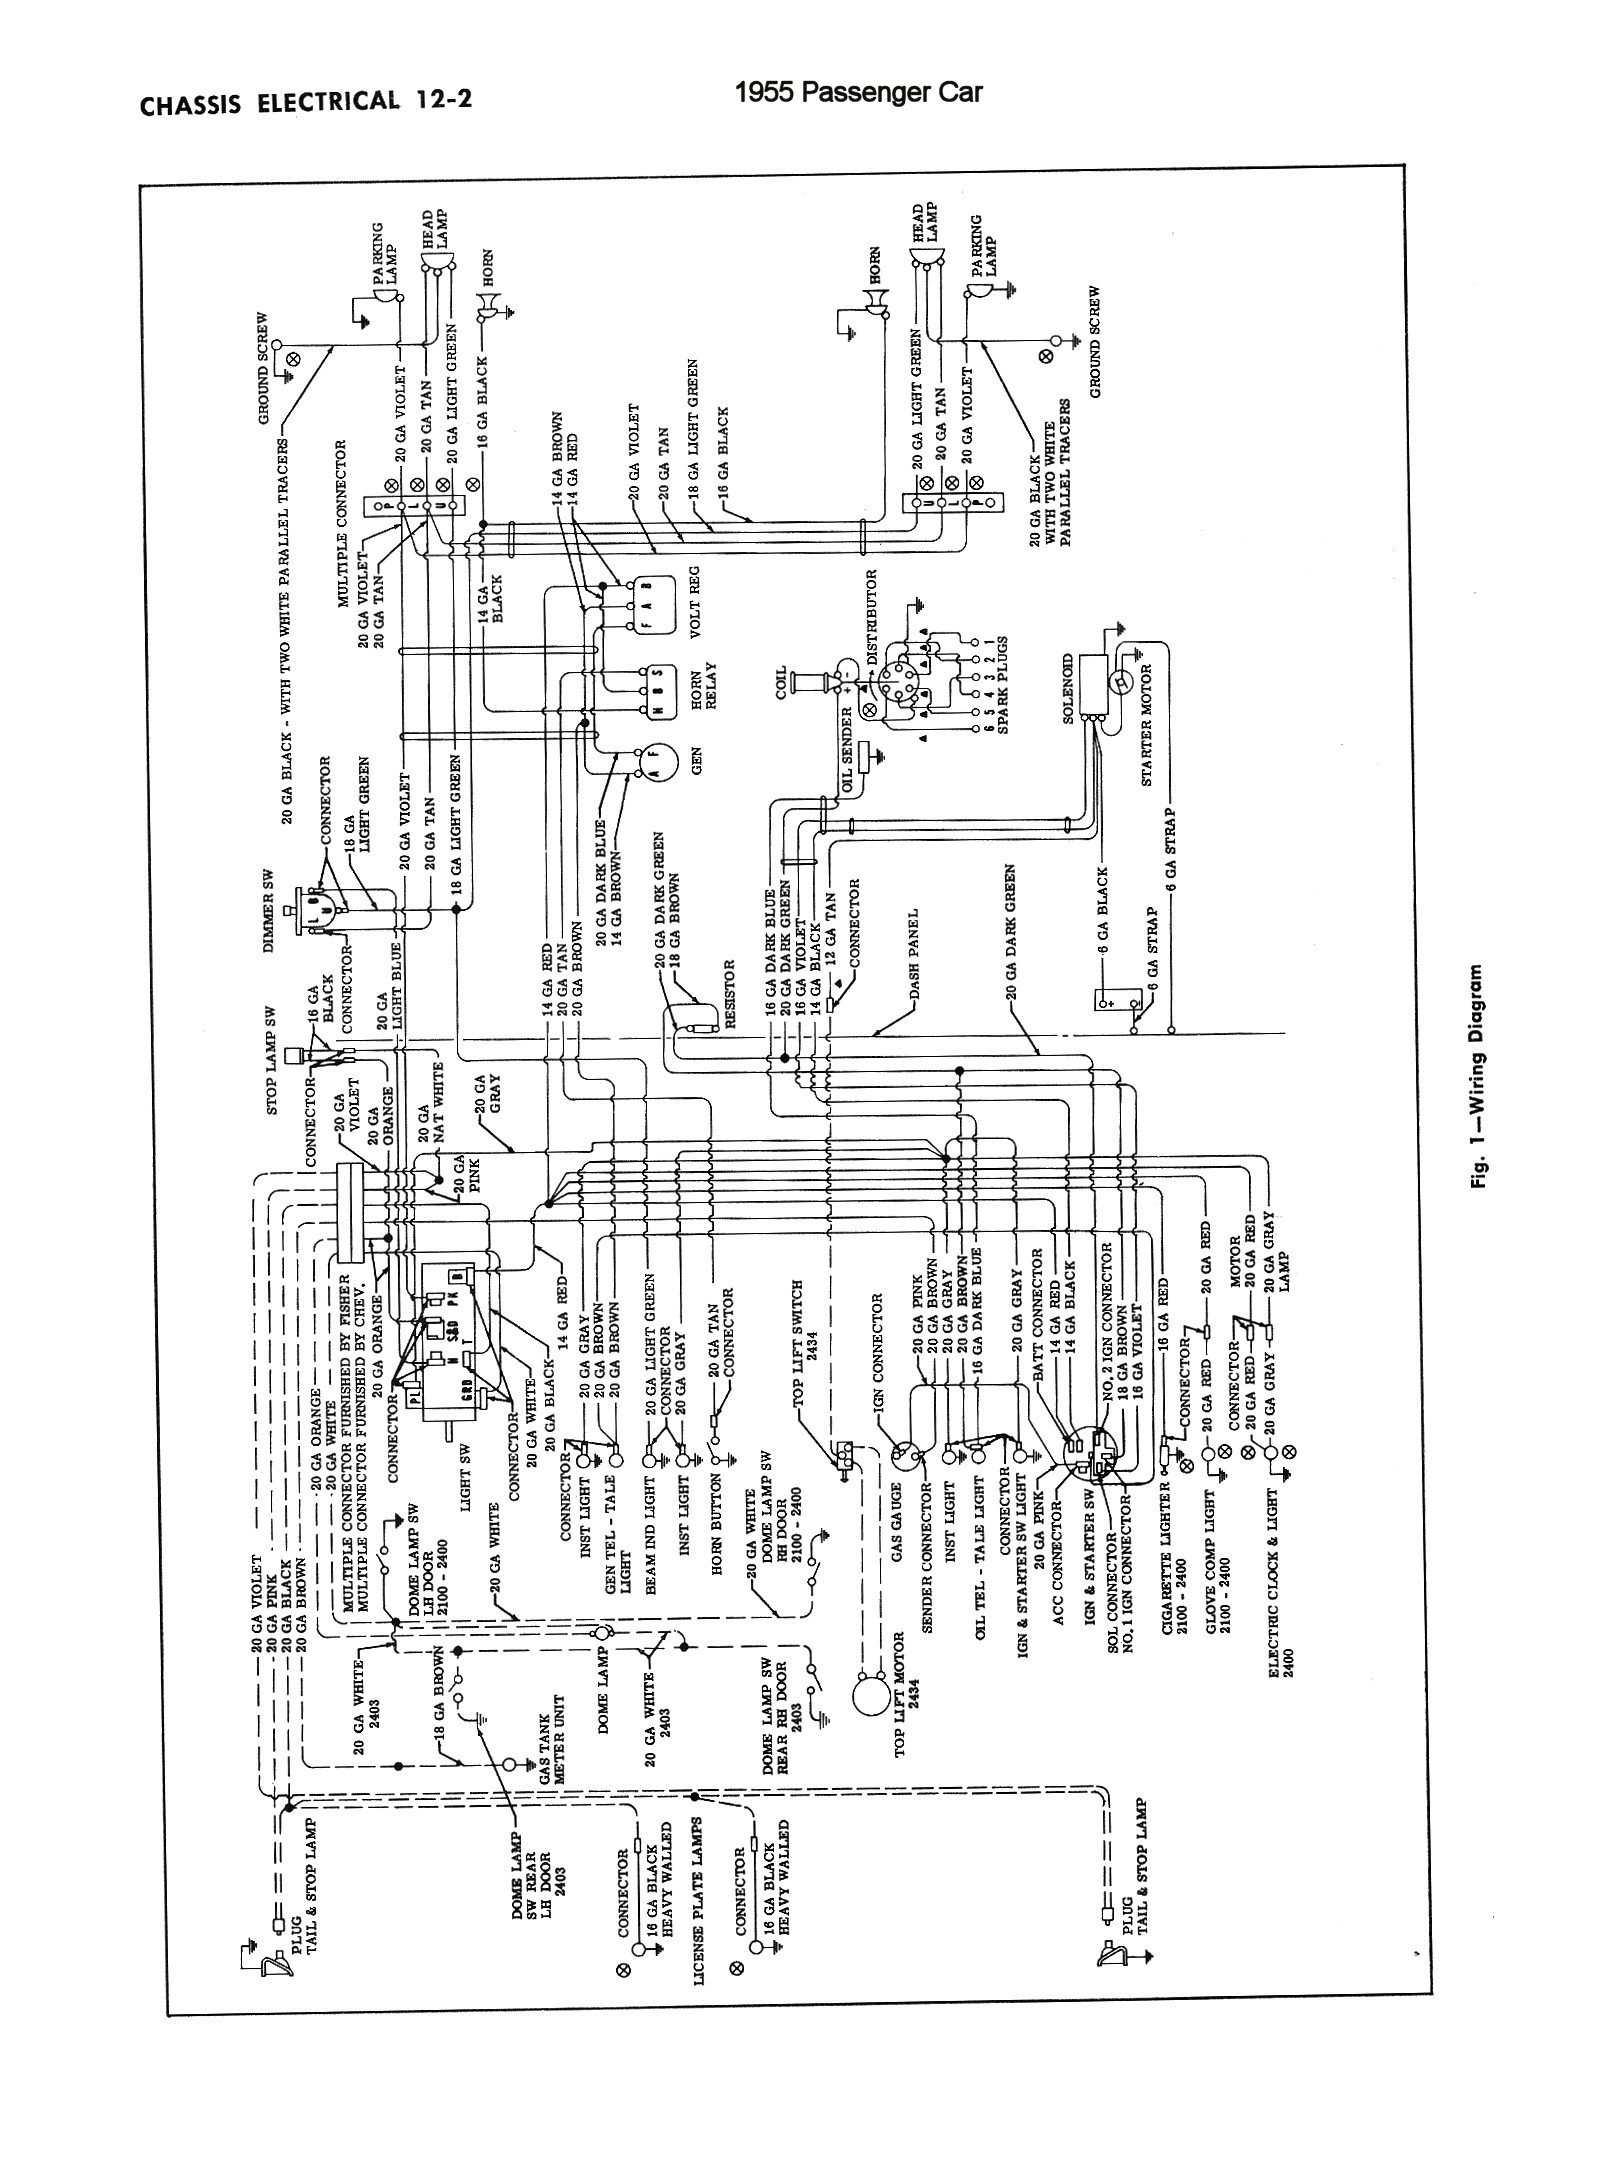 Chevy Wiring Diagram Chevy Wiring Diagram Images